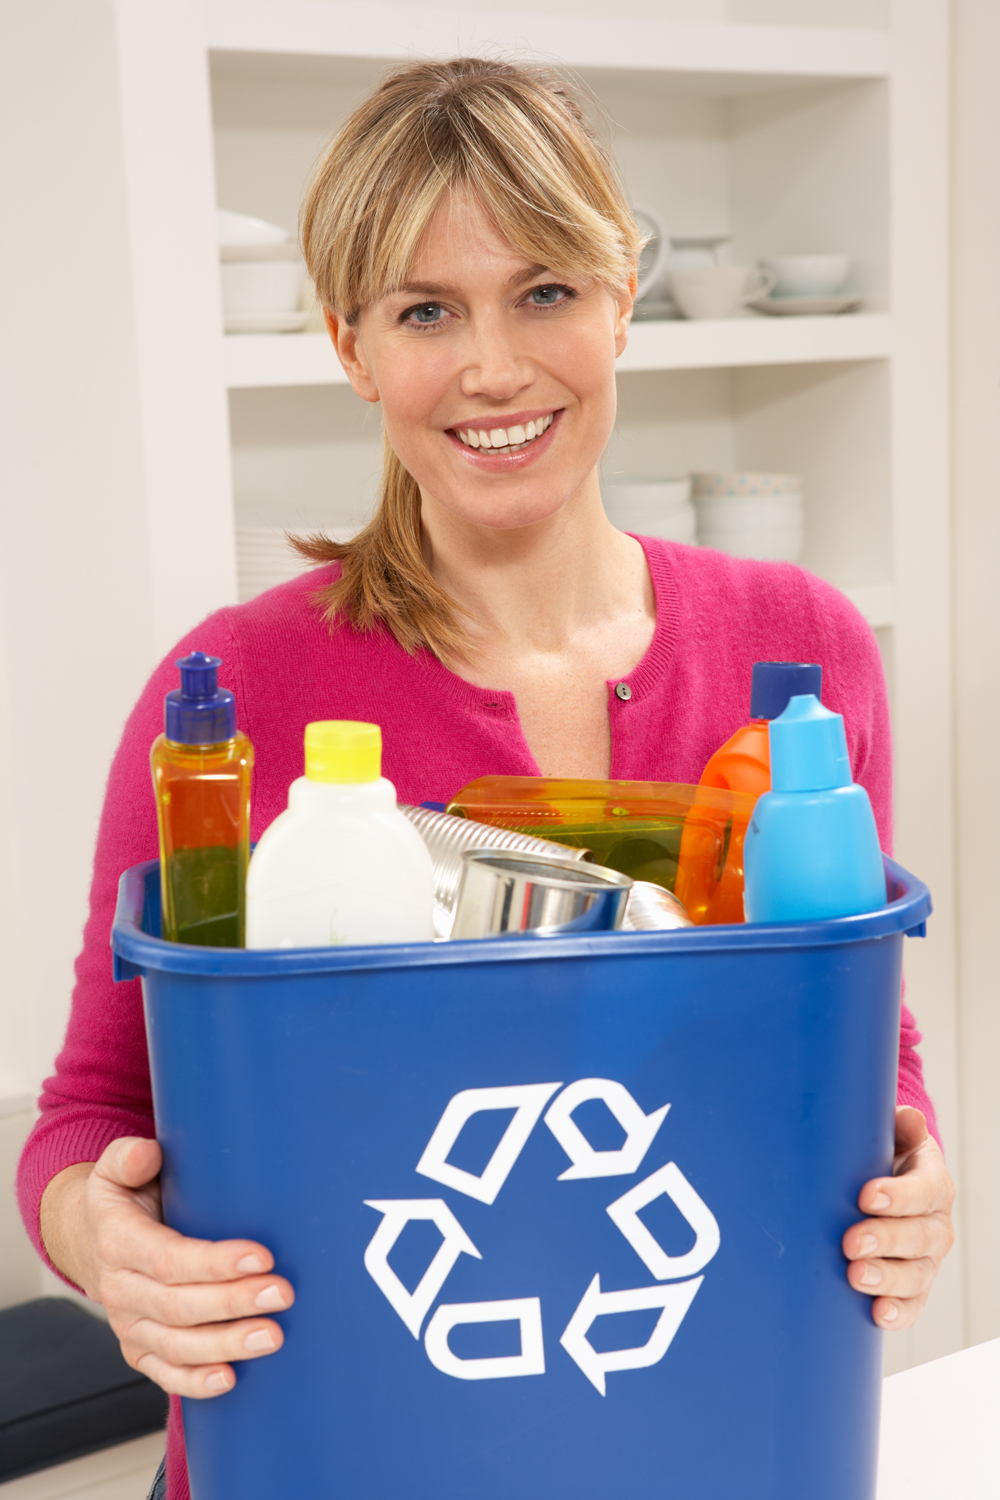 Recycling is an easy thing anyone can do to help conserve natural resources. Residents can recycle common household product packaging, like plastic bottles and jugs, and bi-metal cans.